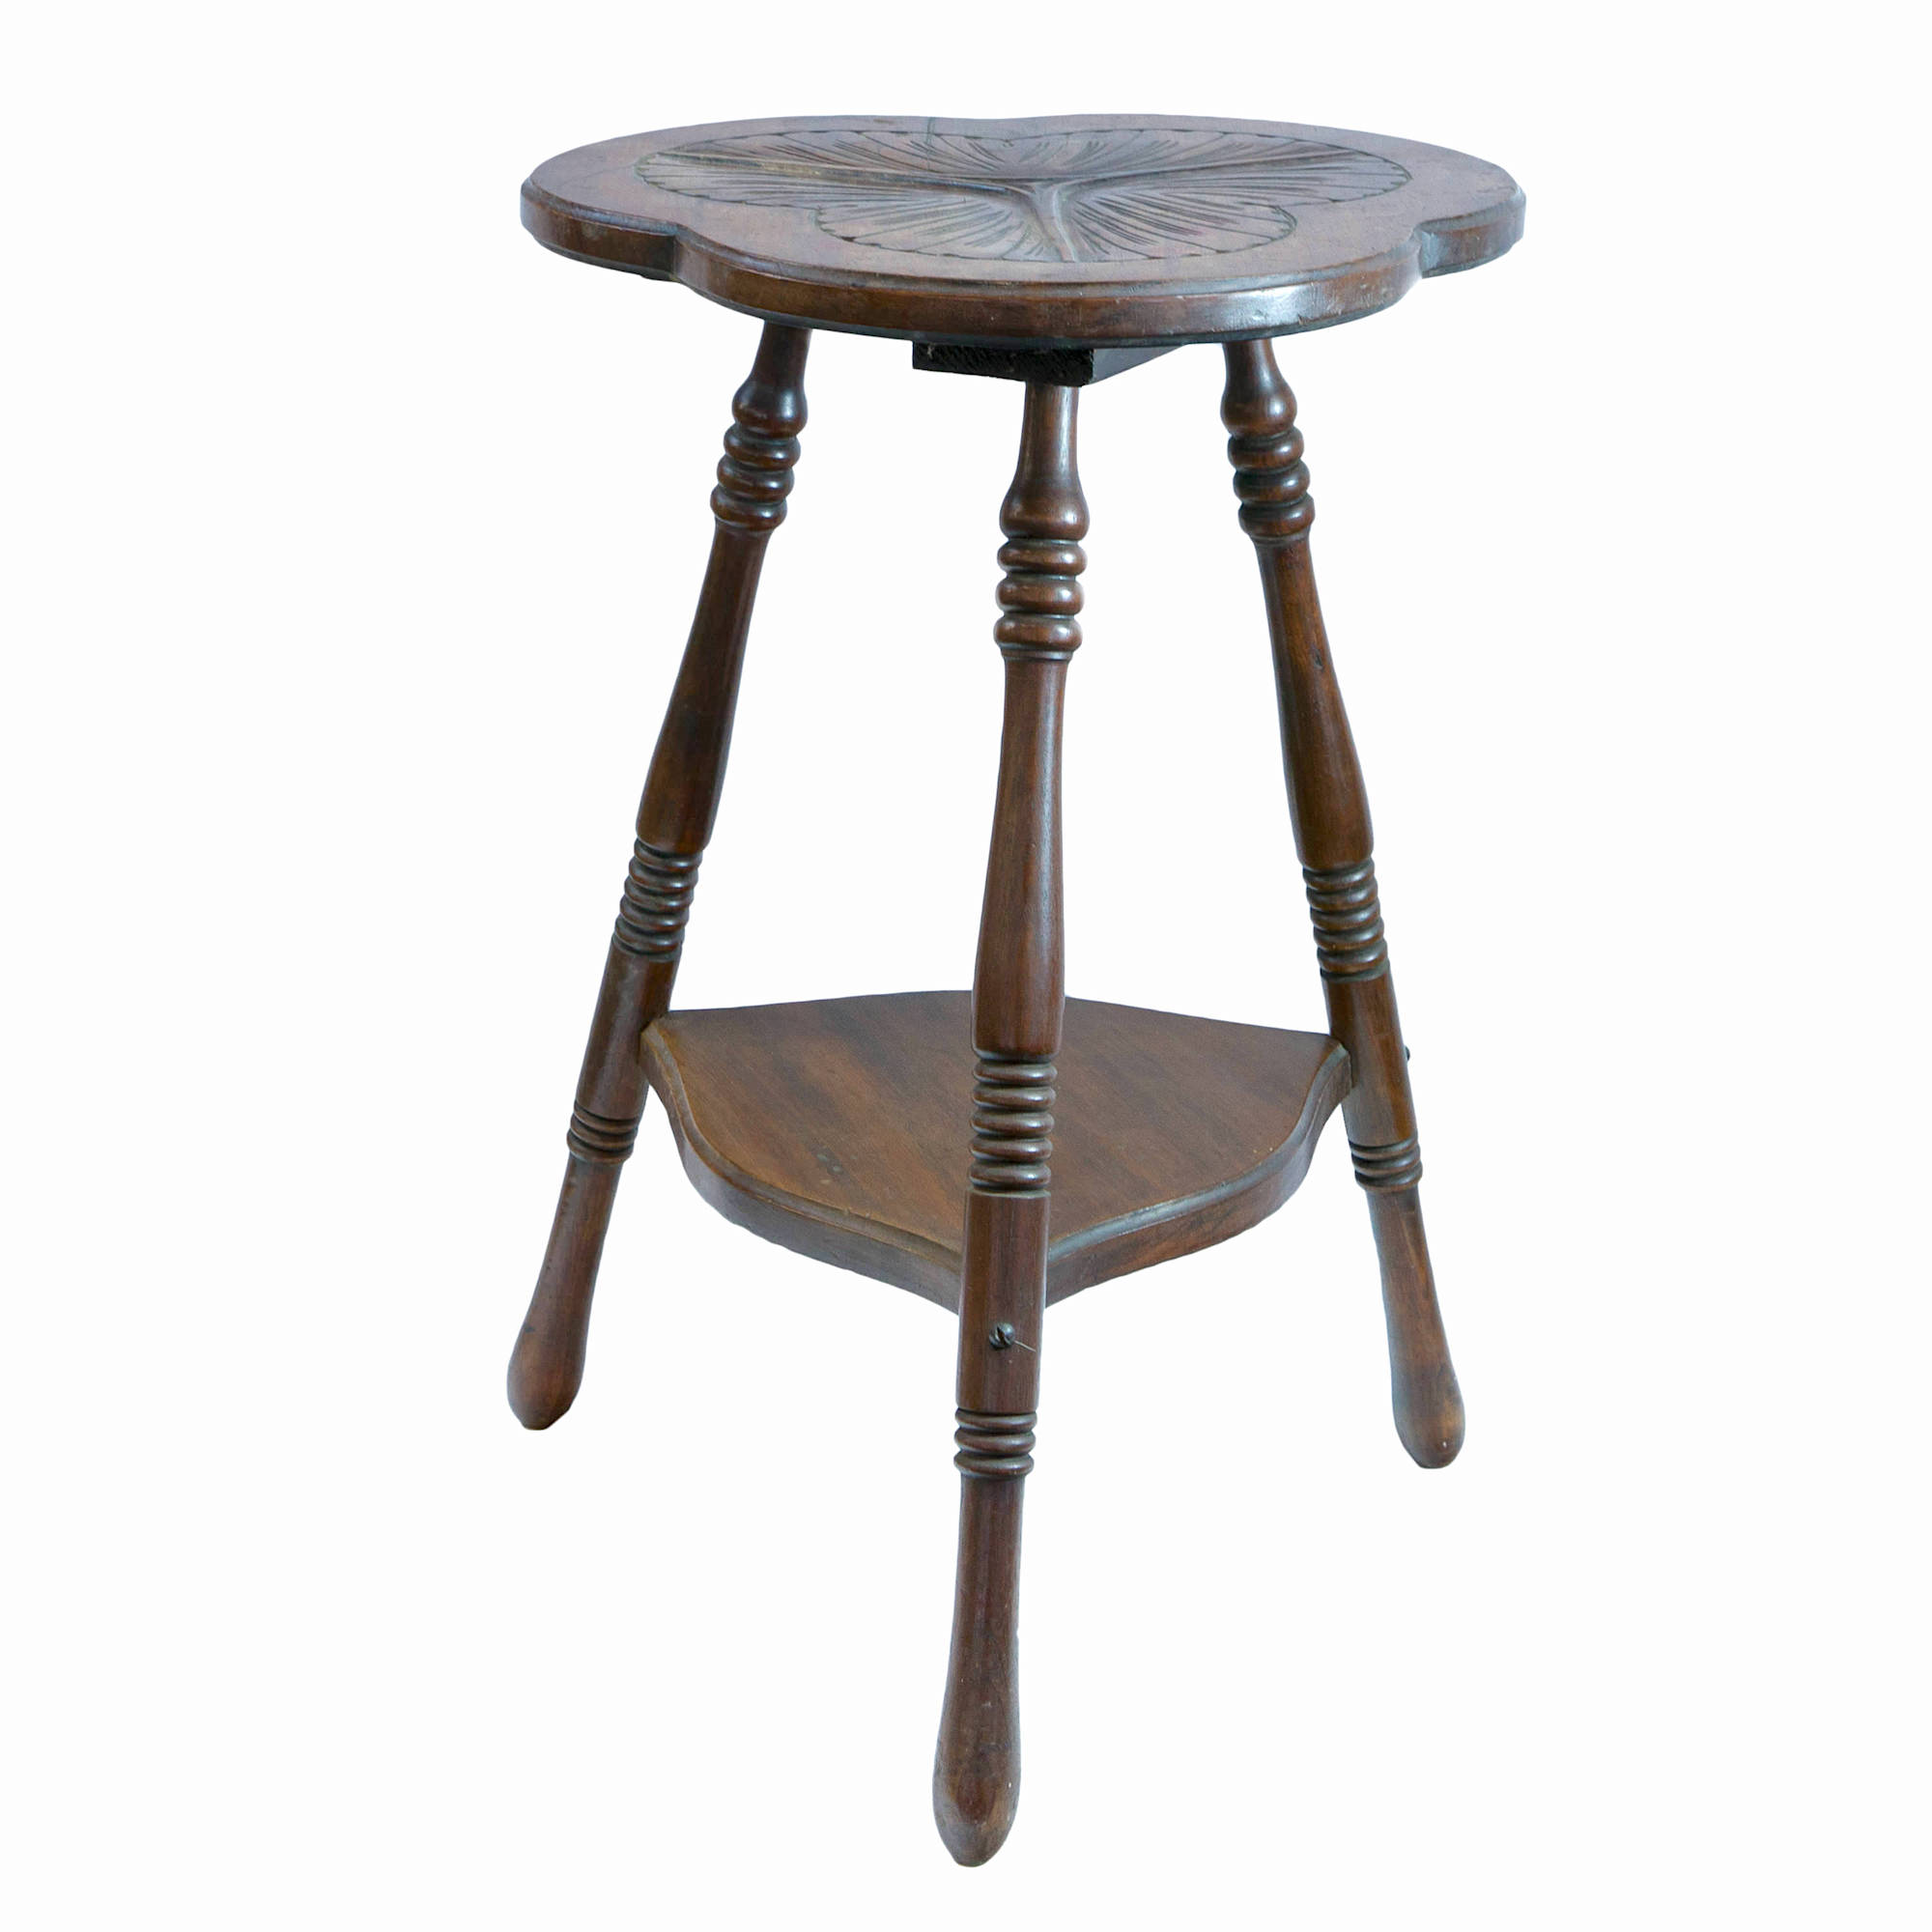 'Small Arts & Crafts Style Carved Walnut Side Table Early 20th Century'